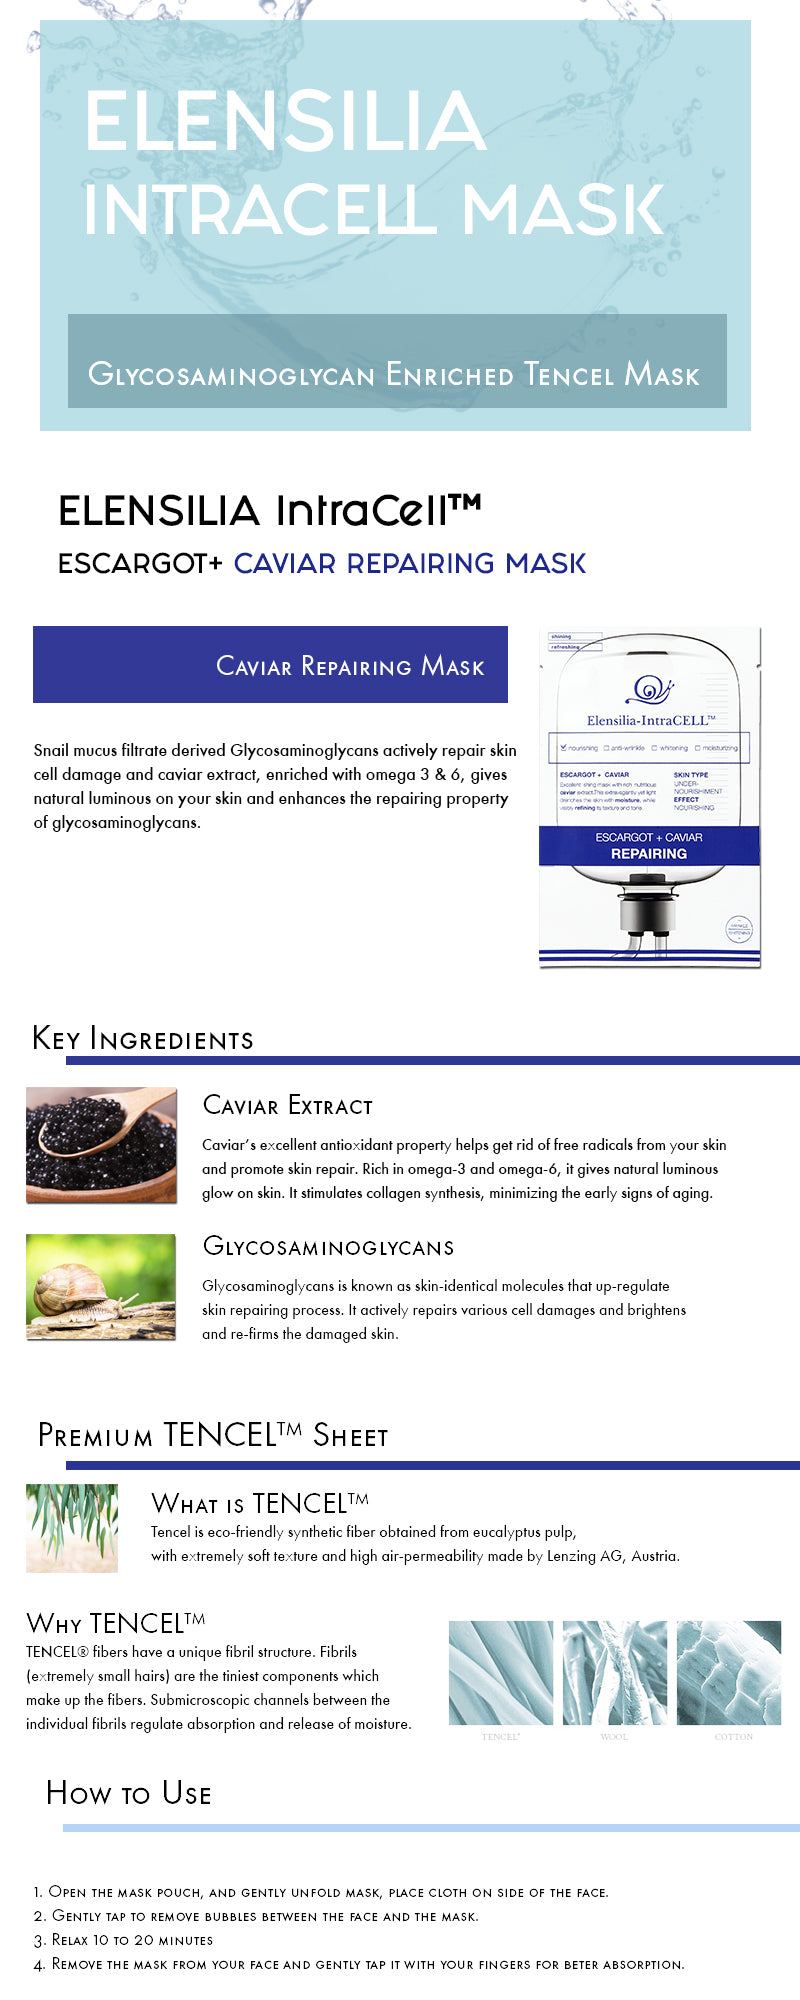 Elensilia IntraCELL Escargot + Caviar Repairing - 1 Sheet